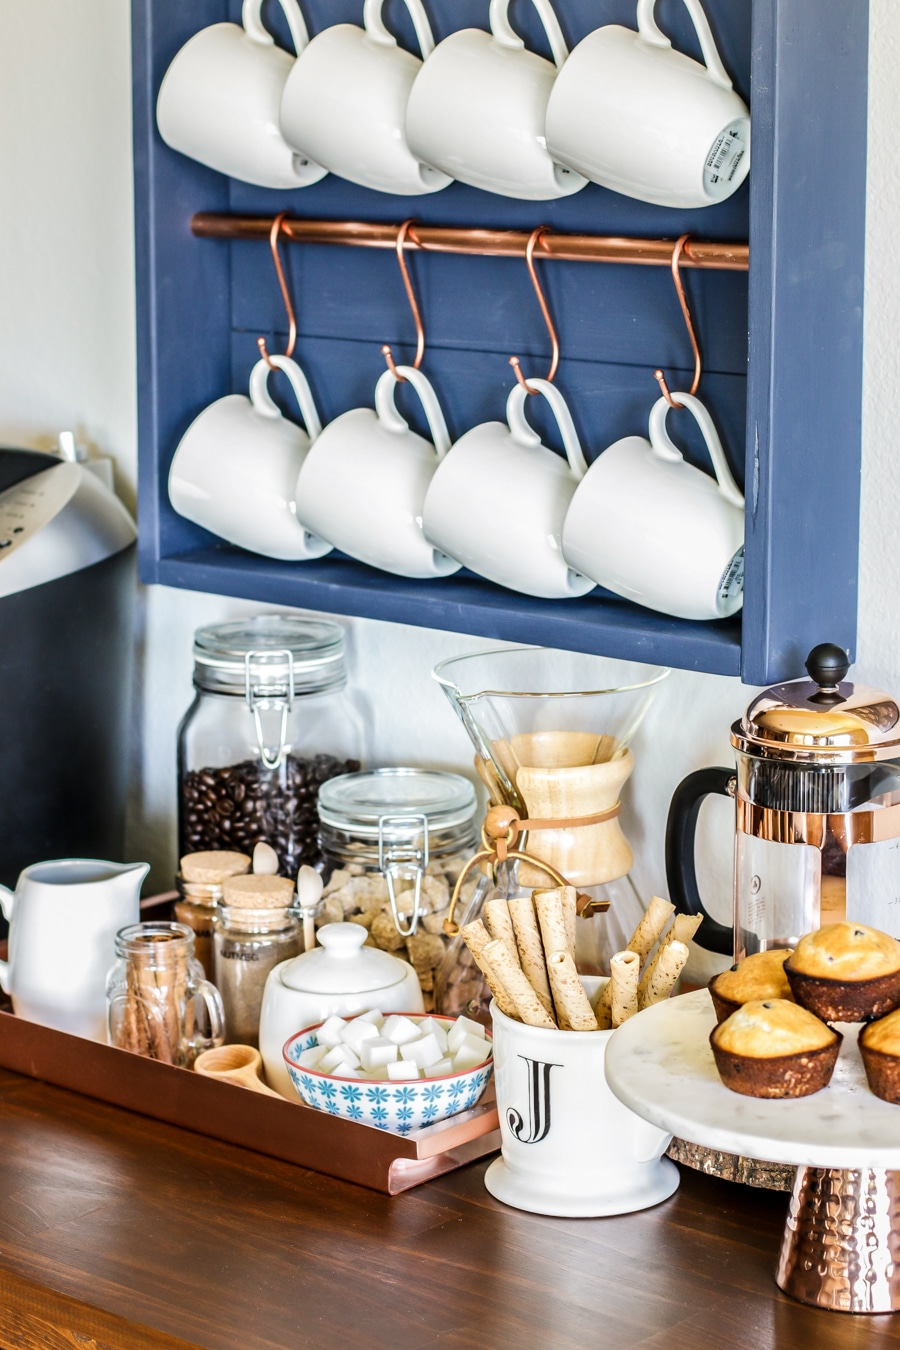 How to make a DIY coffee bar station